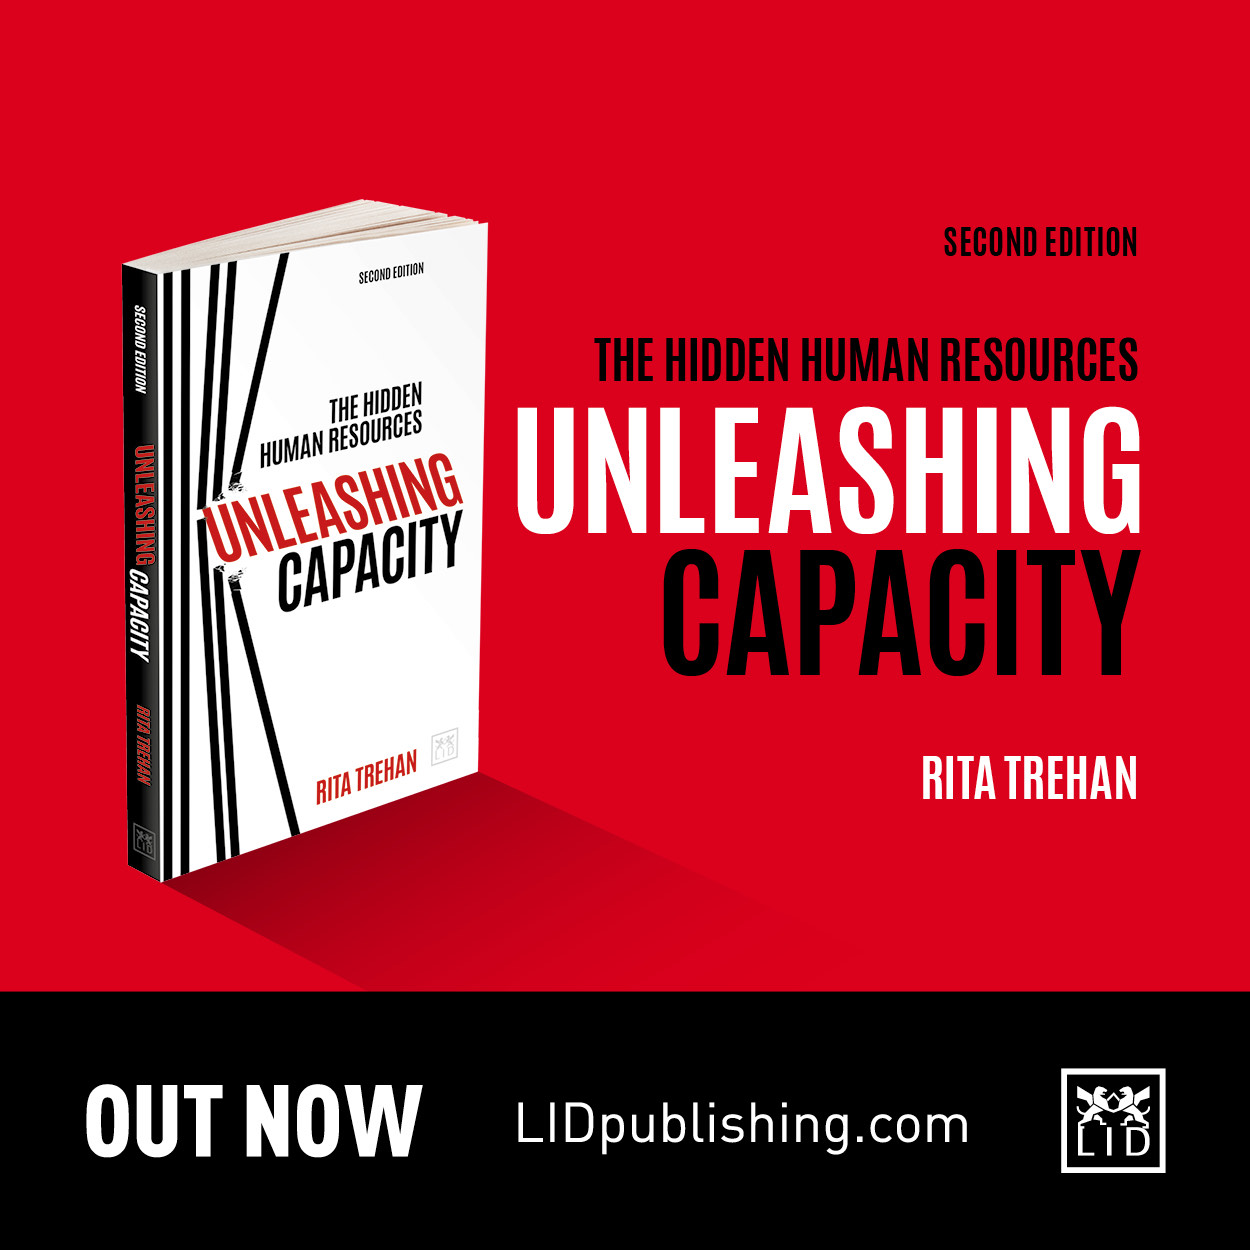 Dare - Rita Trehan, unleasing capacity book